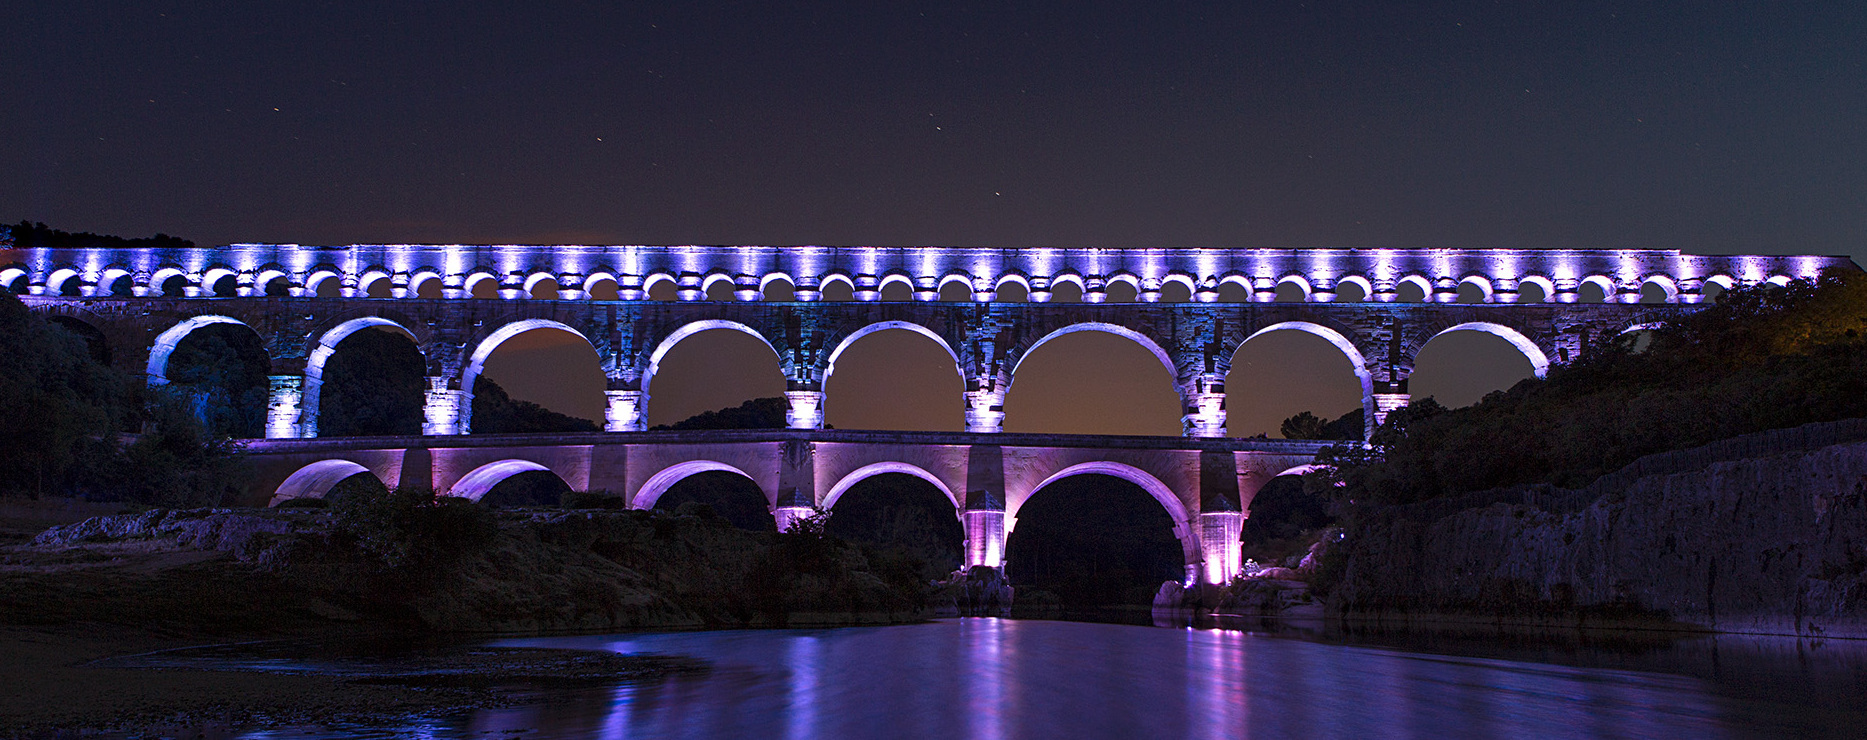 Le Pont Du Laurent Aurillac France